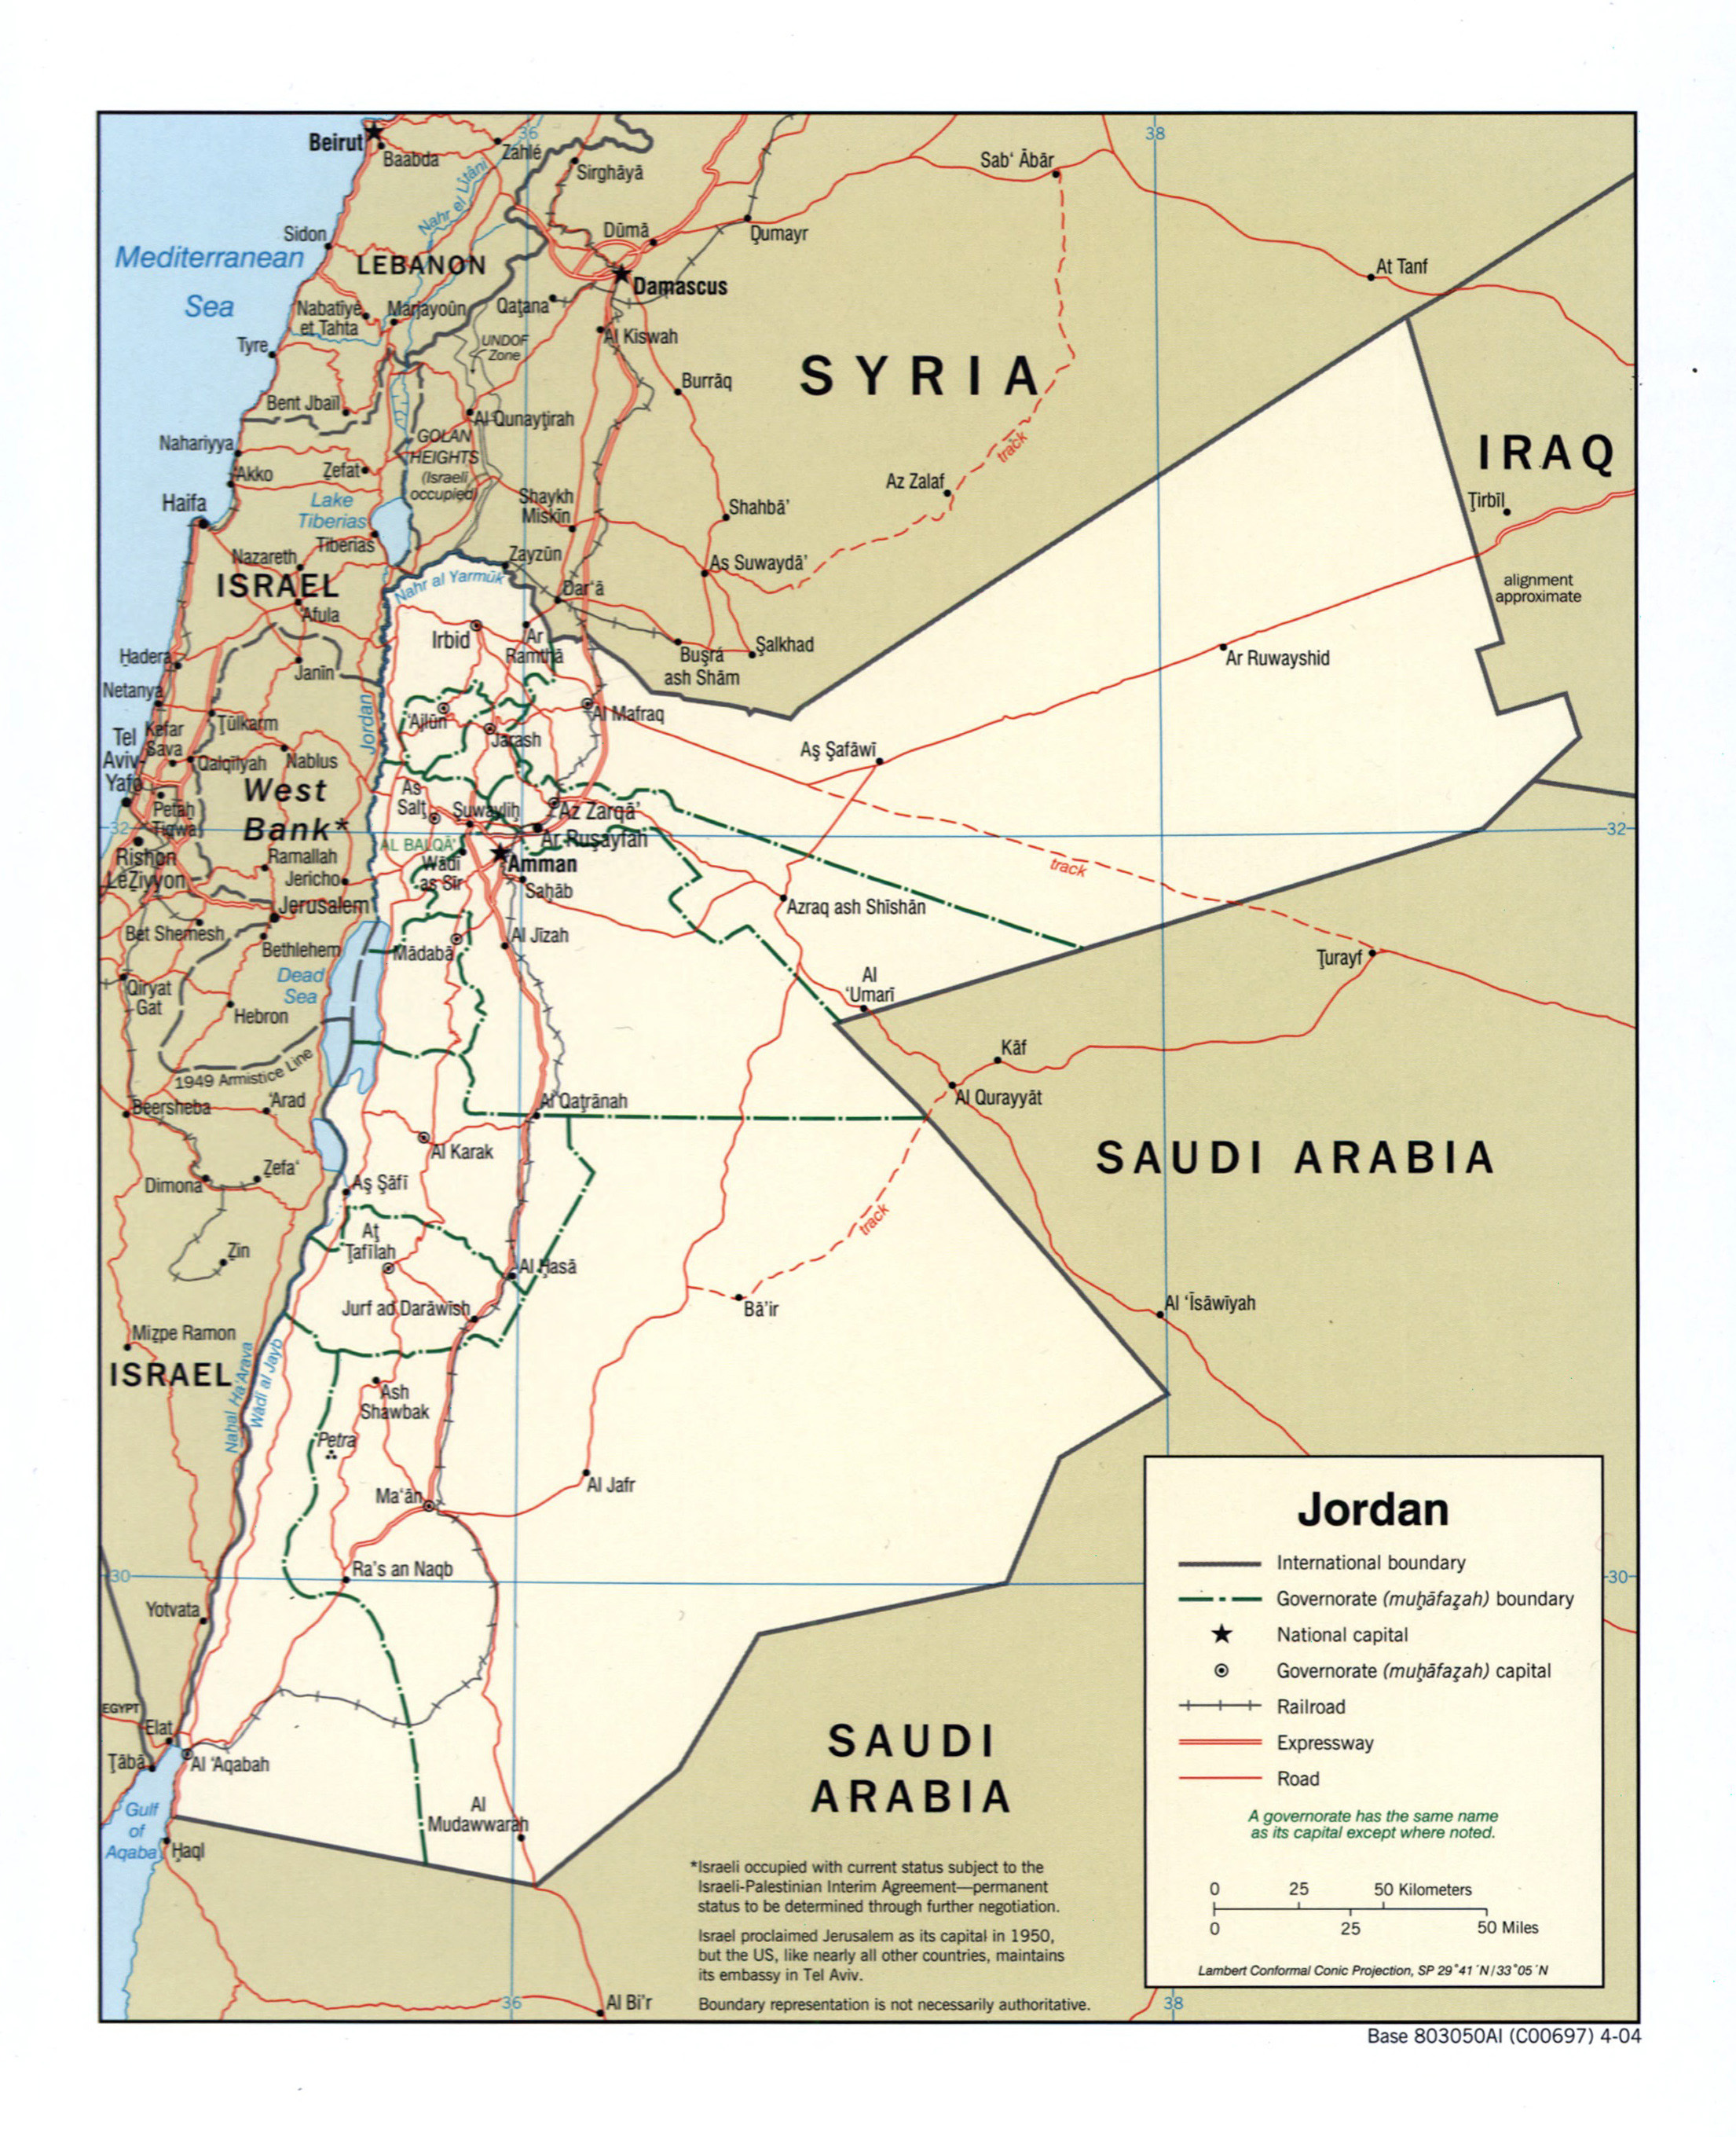 Jordan Political Map.Large Detailed Political And Administrative Map Of Jordan With Roads